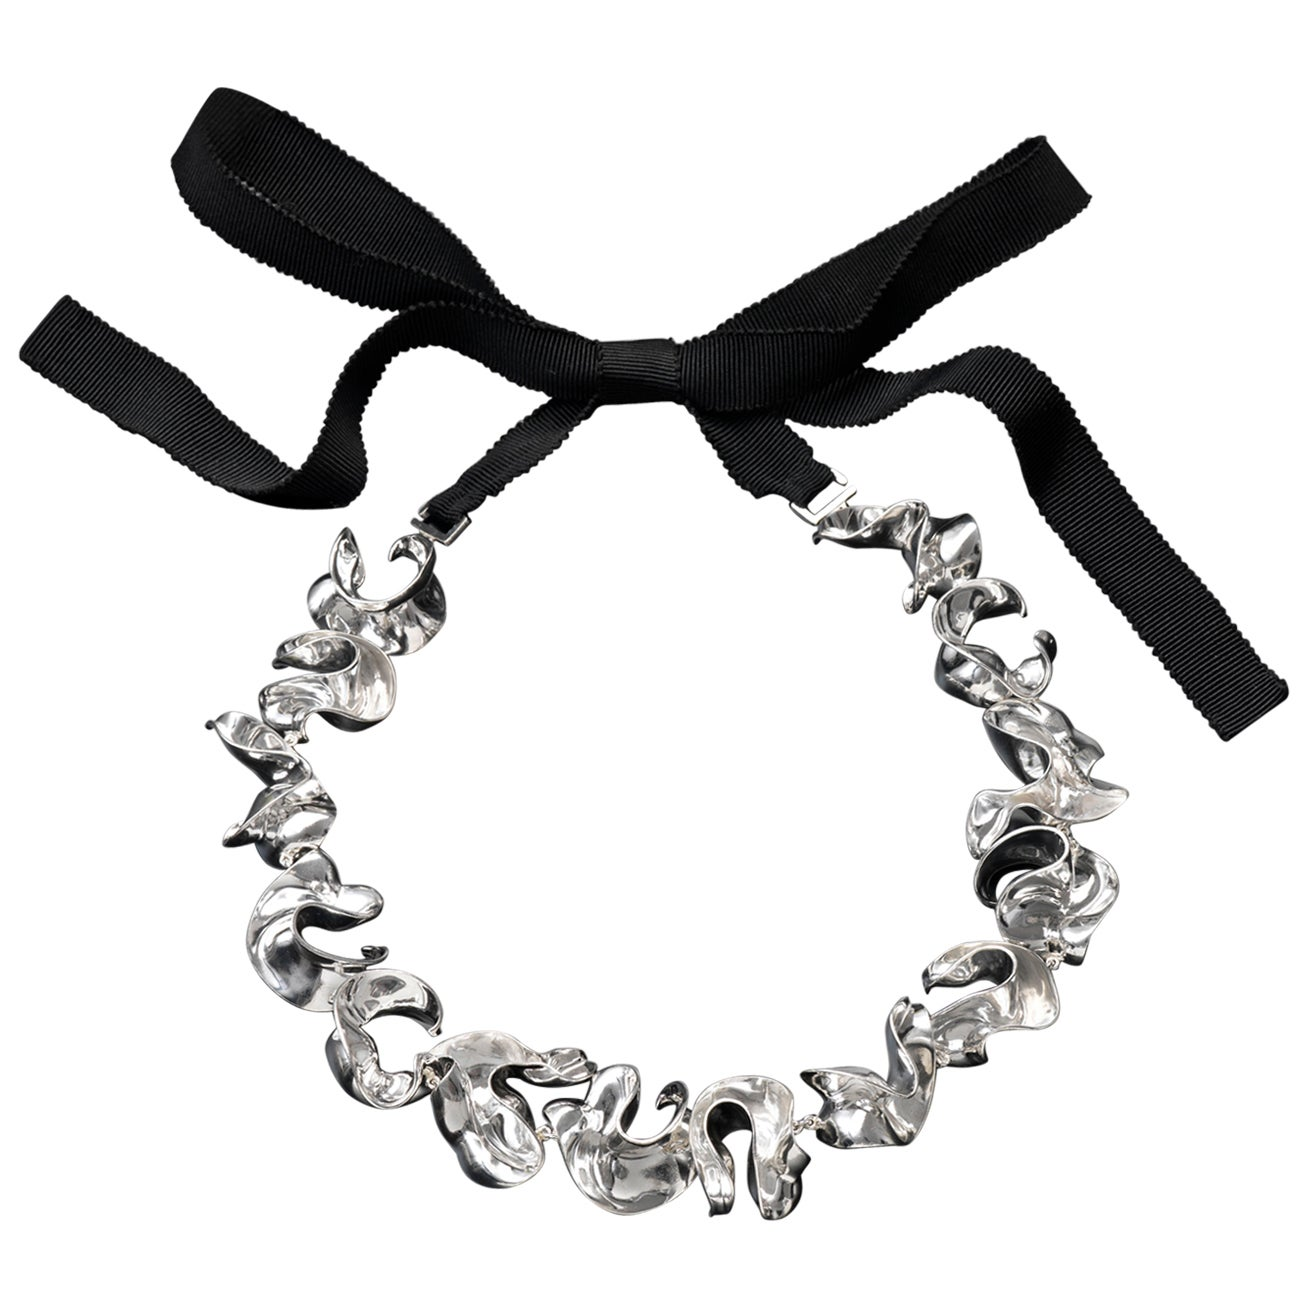 Nathalie Jean Contemporary Limited Edition Sterling Silver Link Choker Necklace